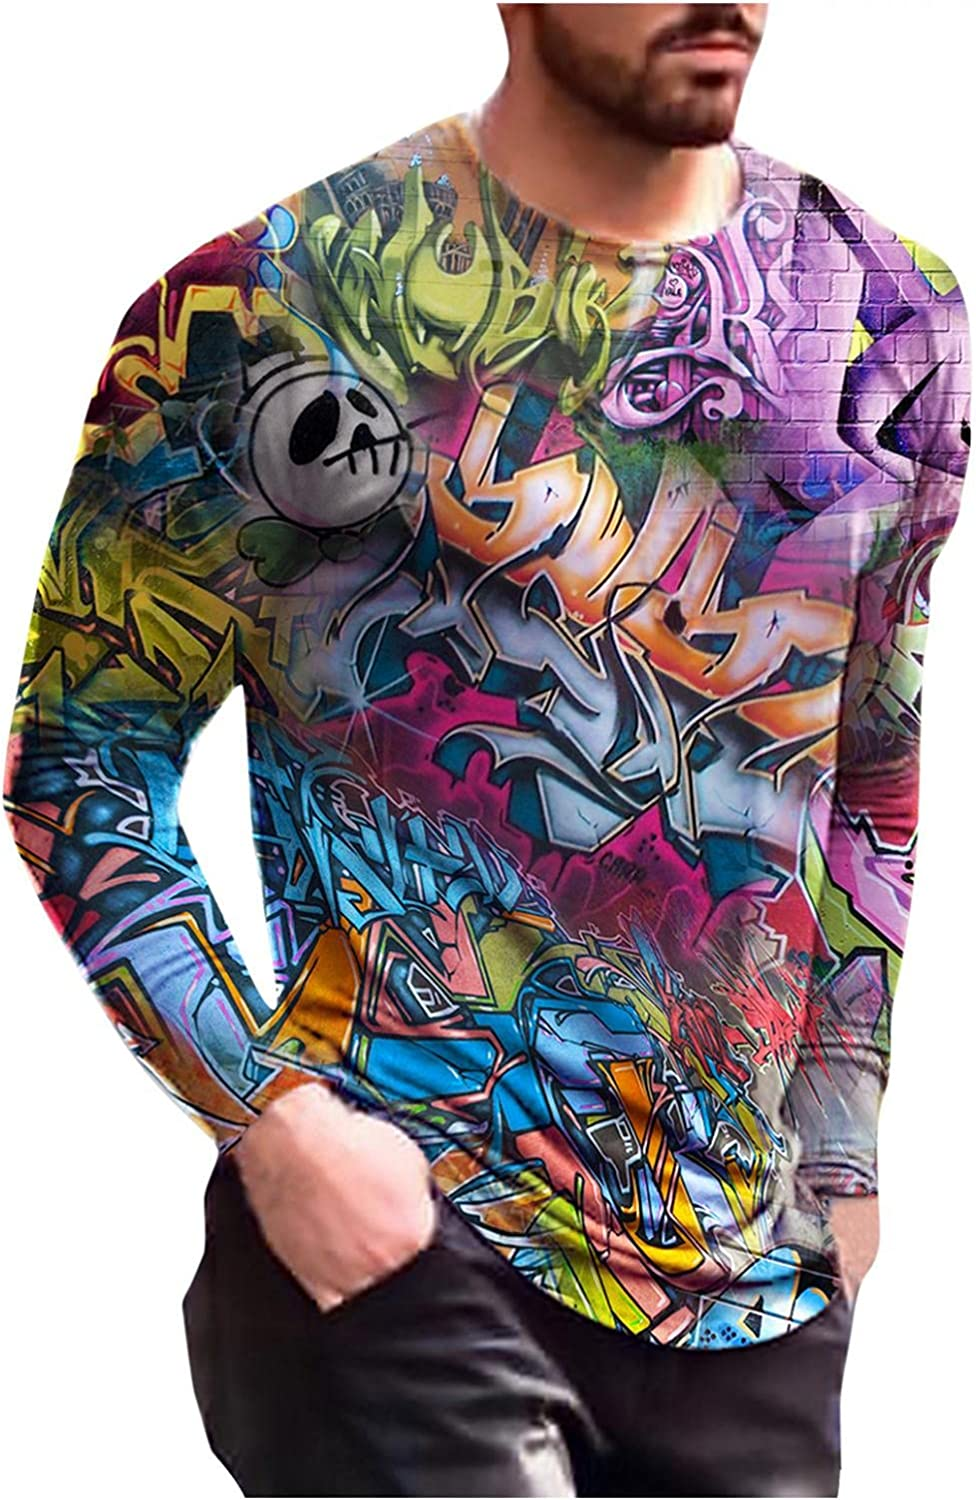 Men T-Shirts 3D Painting Abstract Printed Graphic Tee Casual Round Neck Long Sleeve Tops Workout Sport Men's T Shirts